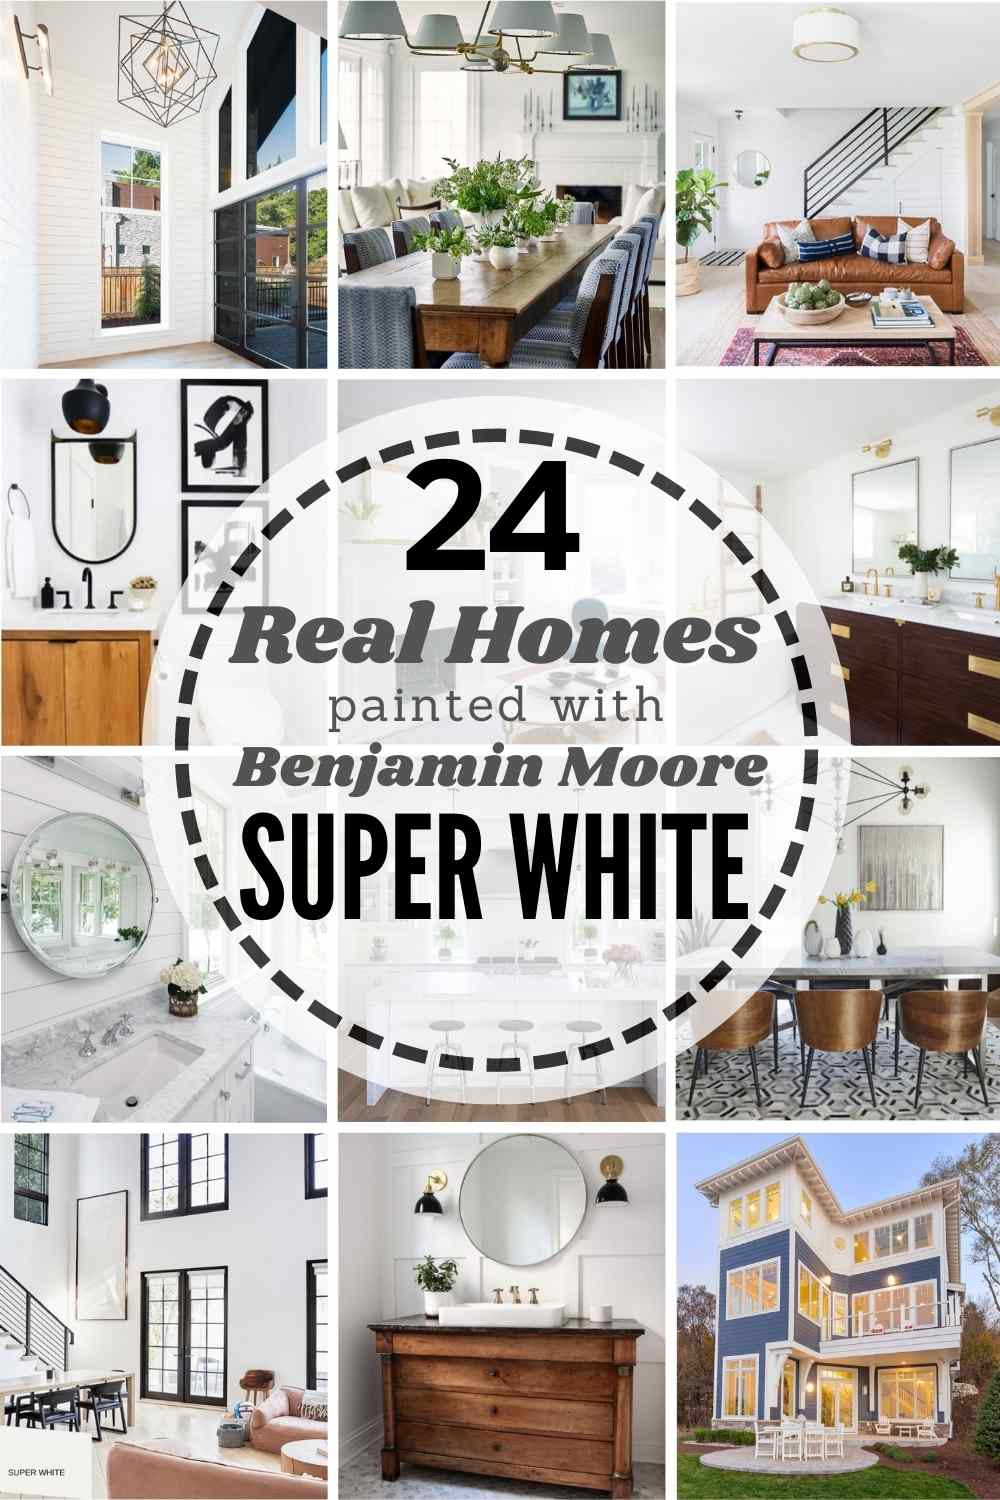 grid of 12 rooms painted with Benjamin Moore Super White - text overlay 24 homes painted with Benjamin Moore Super White